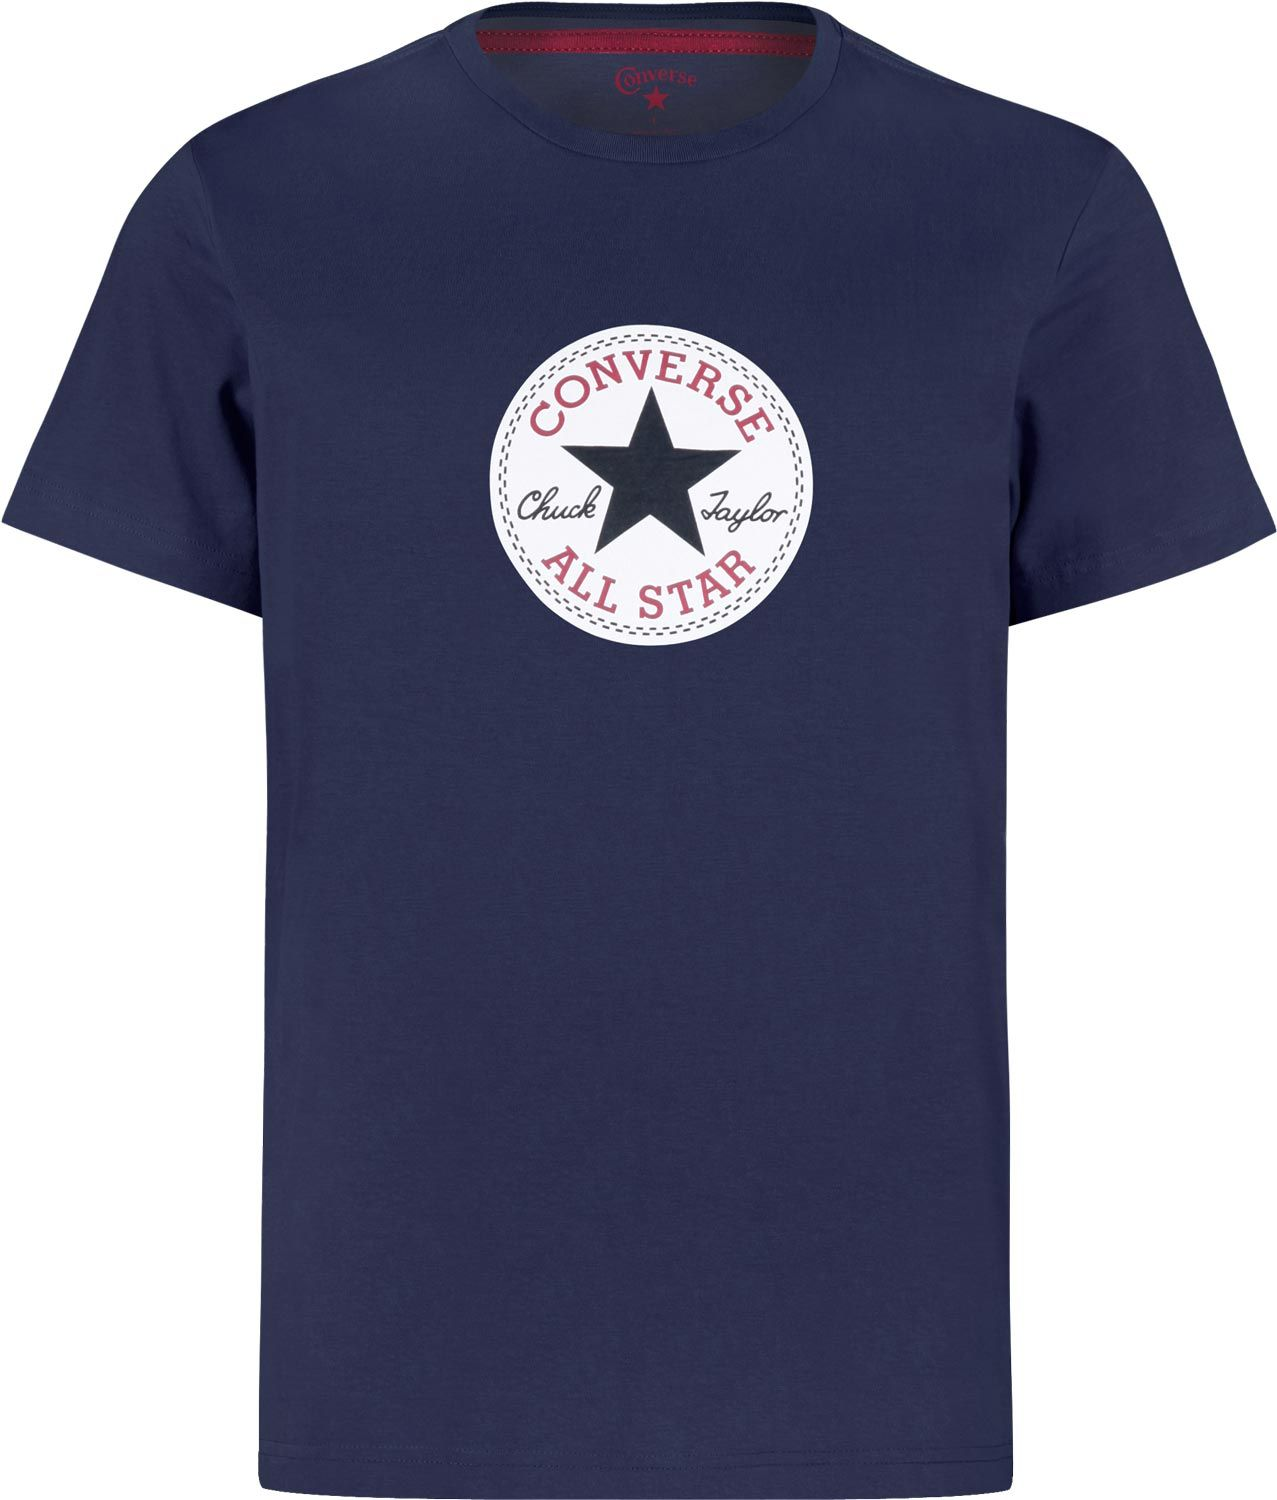 19627bc9 all star converse t-shirts - Google Search | MEN CL0THING | Converse ...